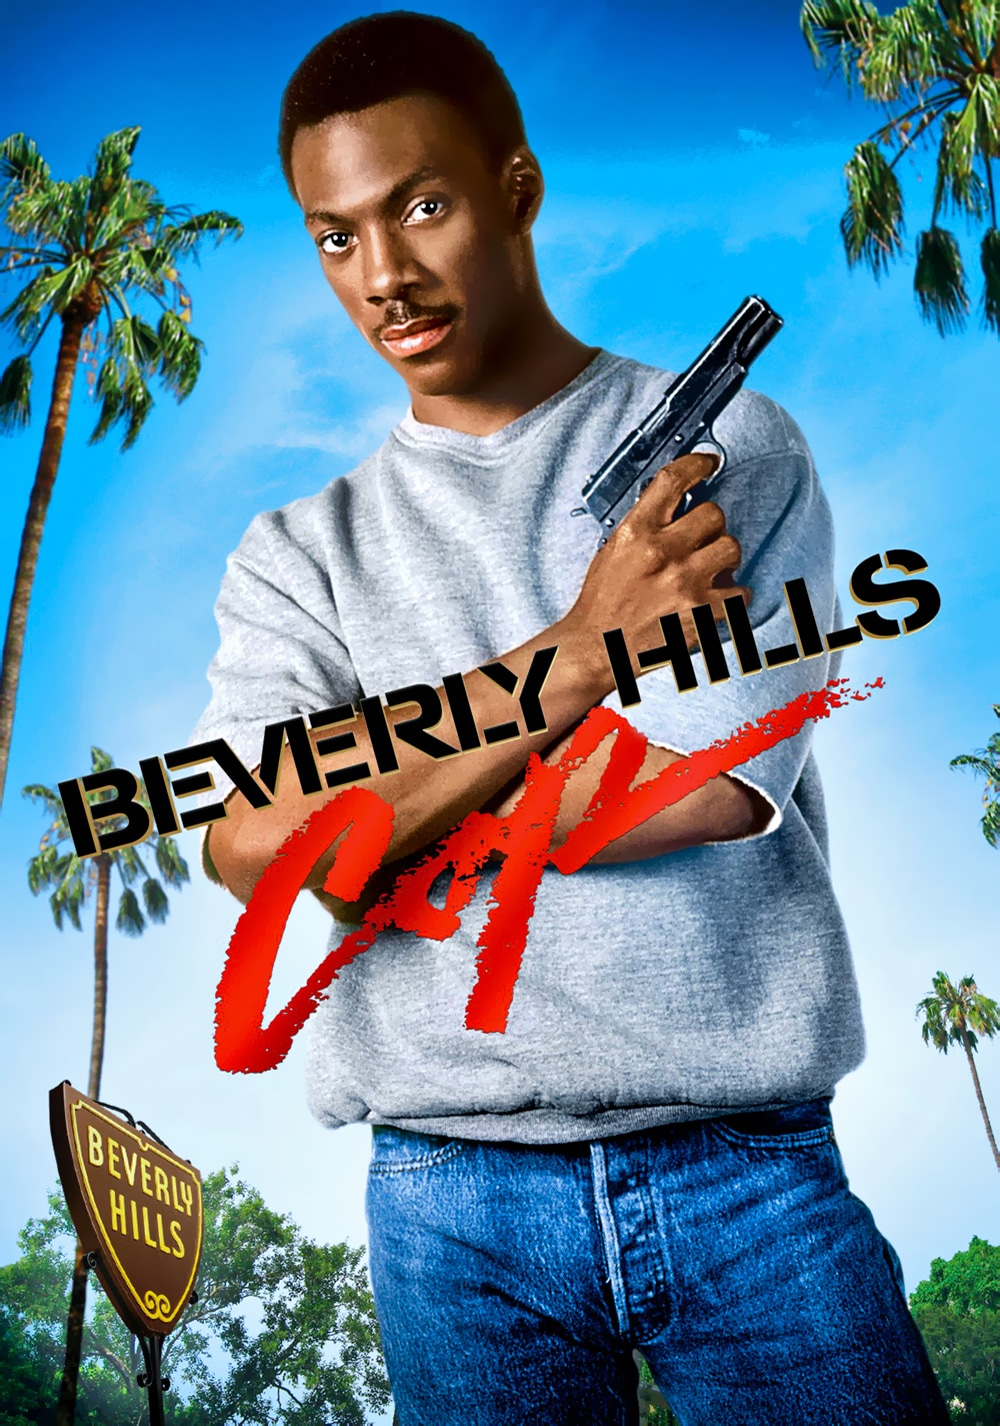 Eddie Murphy Returns With Beverly Hills Cop 4 With Netflix And Paramount